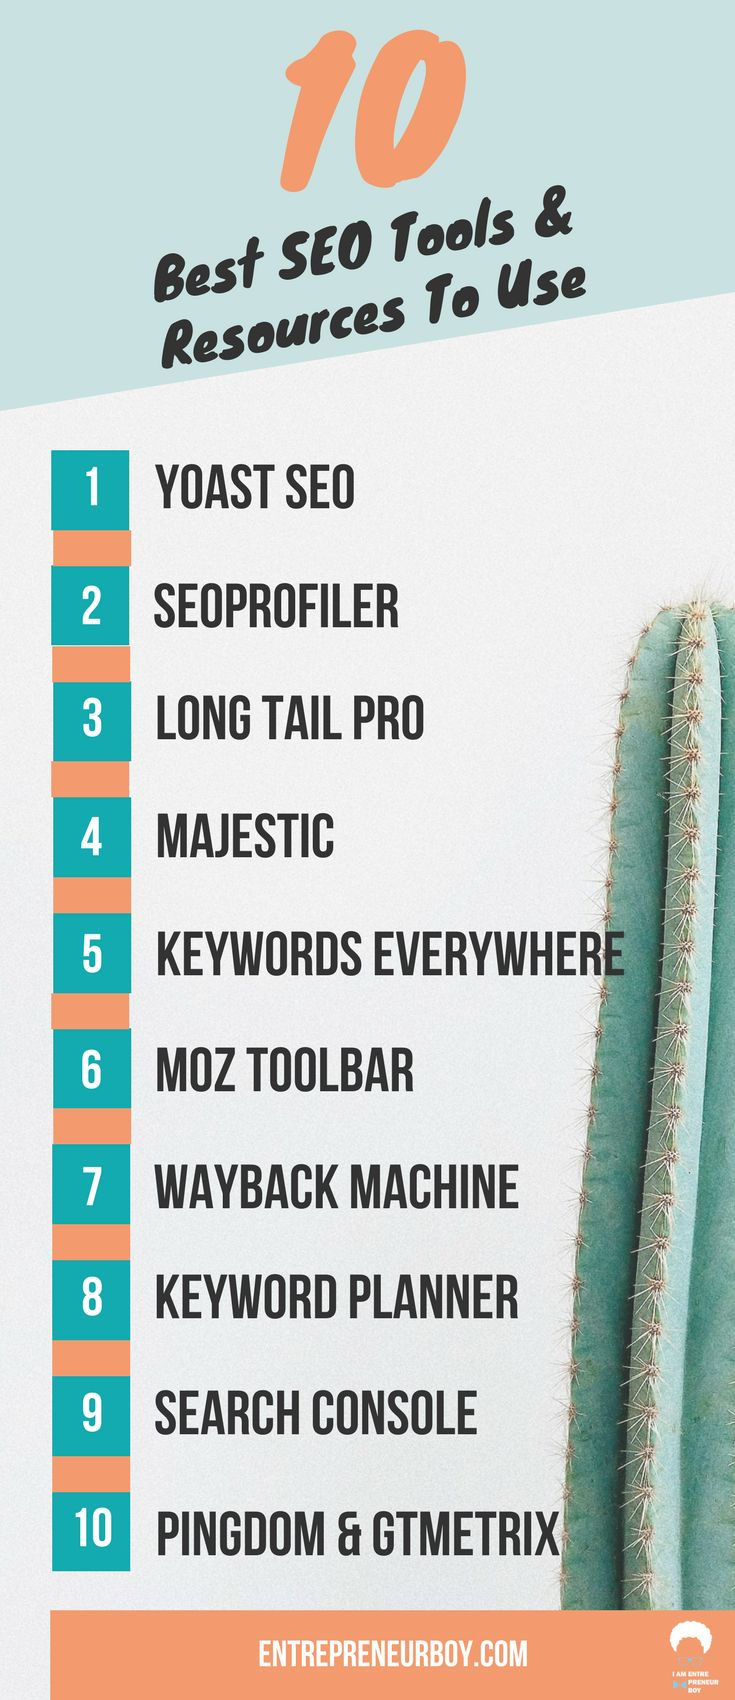 If you run a blog and want to optimize your blog for traffic, we have listed the best SEO Tools and Resources for beginners that we've used to help you increase your blog traffic and get in good with search engines.